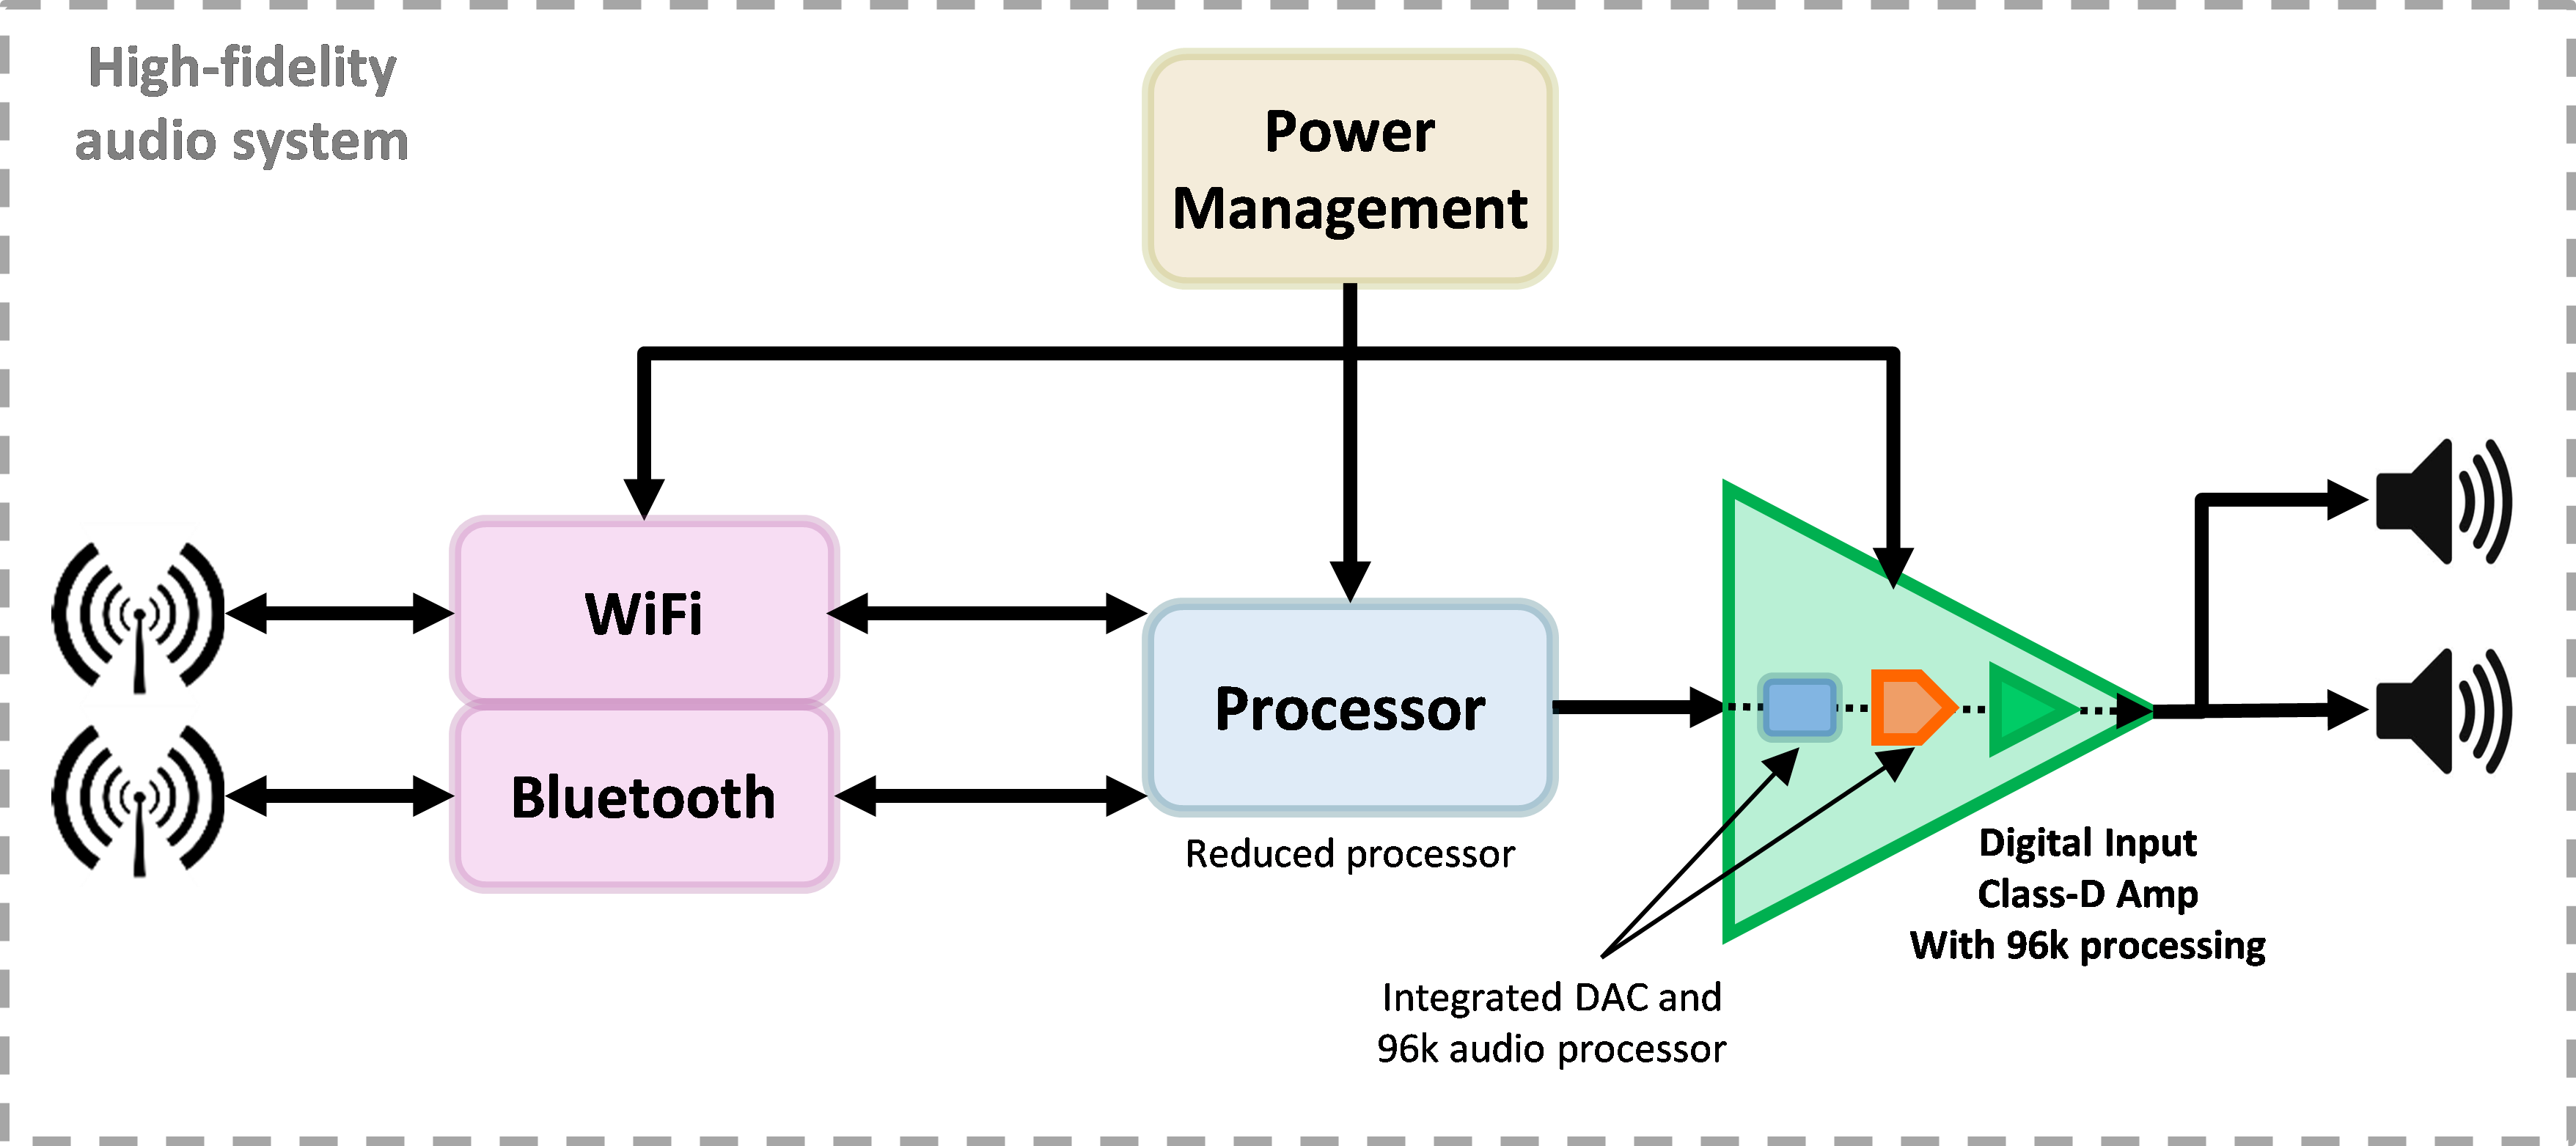 ... the amplifier itself. You can further reduce cost and size by reducing  the cost and size of the main processor. Figure 2 is an optimized block  diagram.